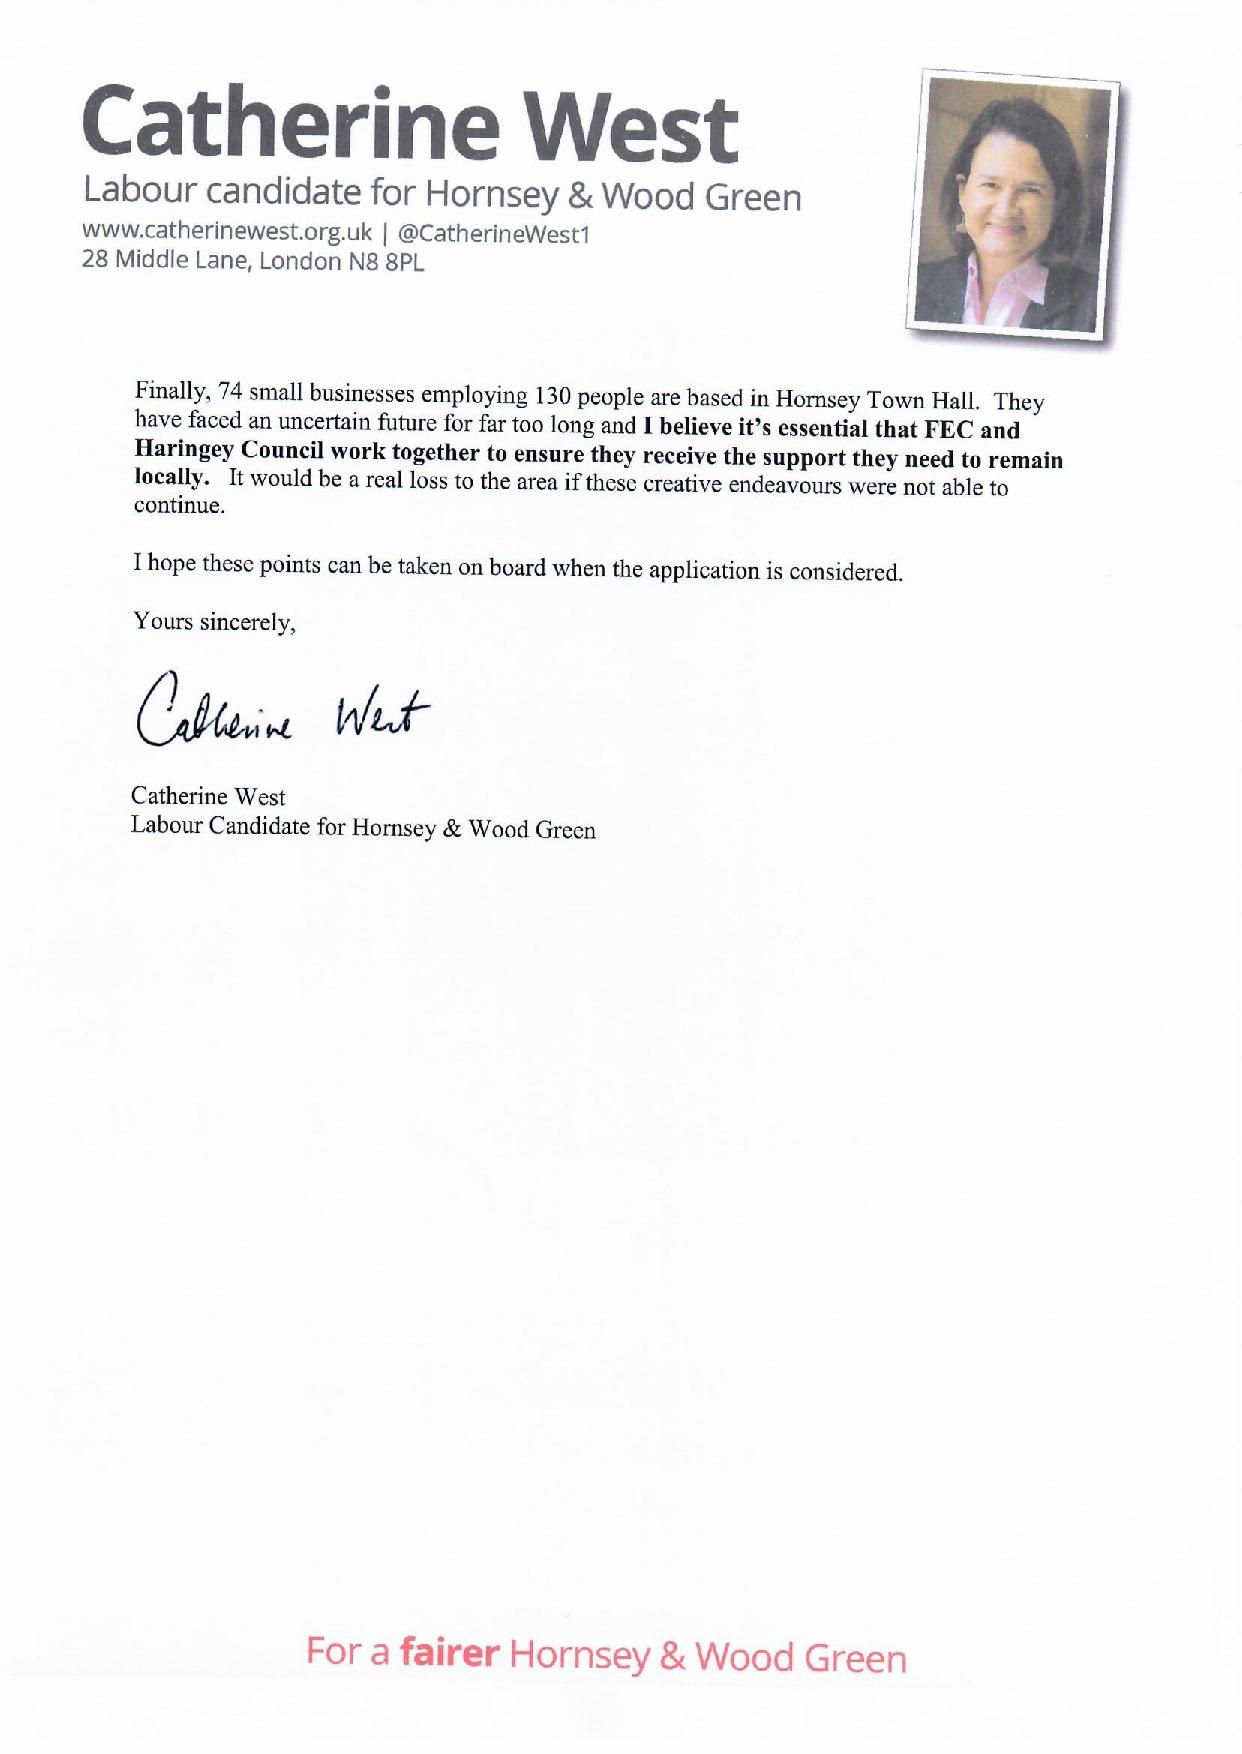 Letter_to_Chief_Executive_re_HTH_May_2017-page-002.jpg